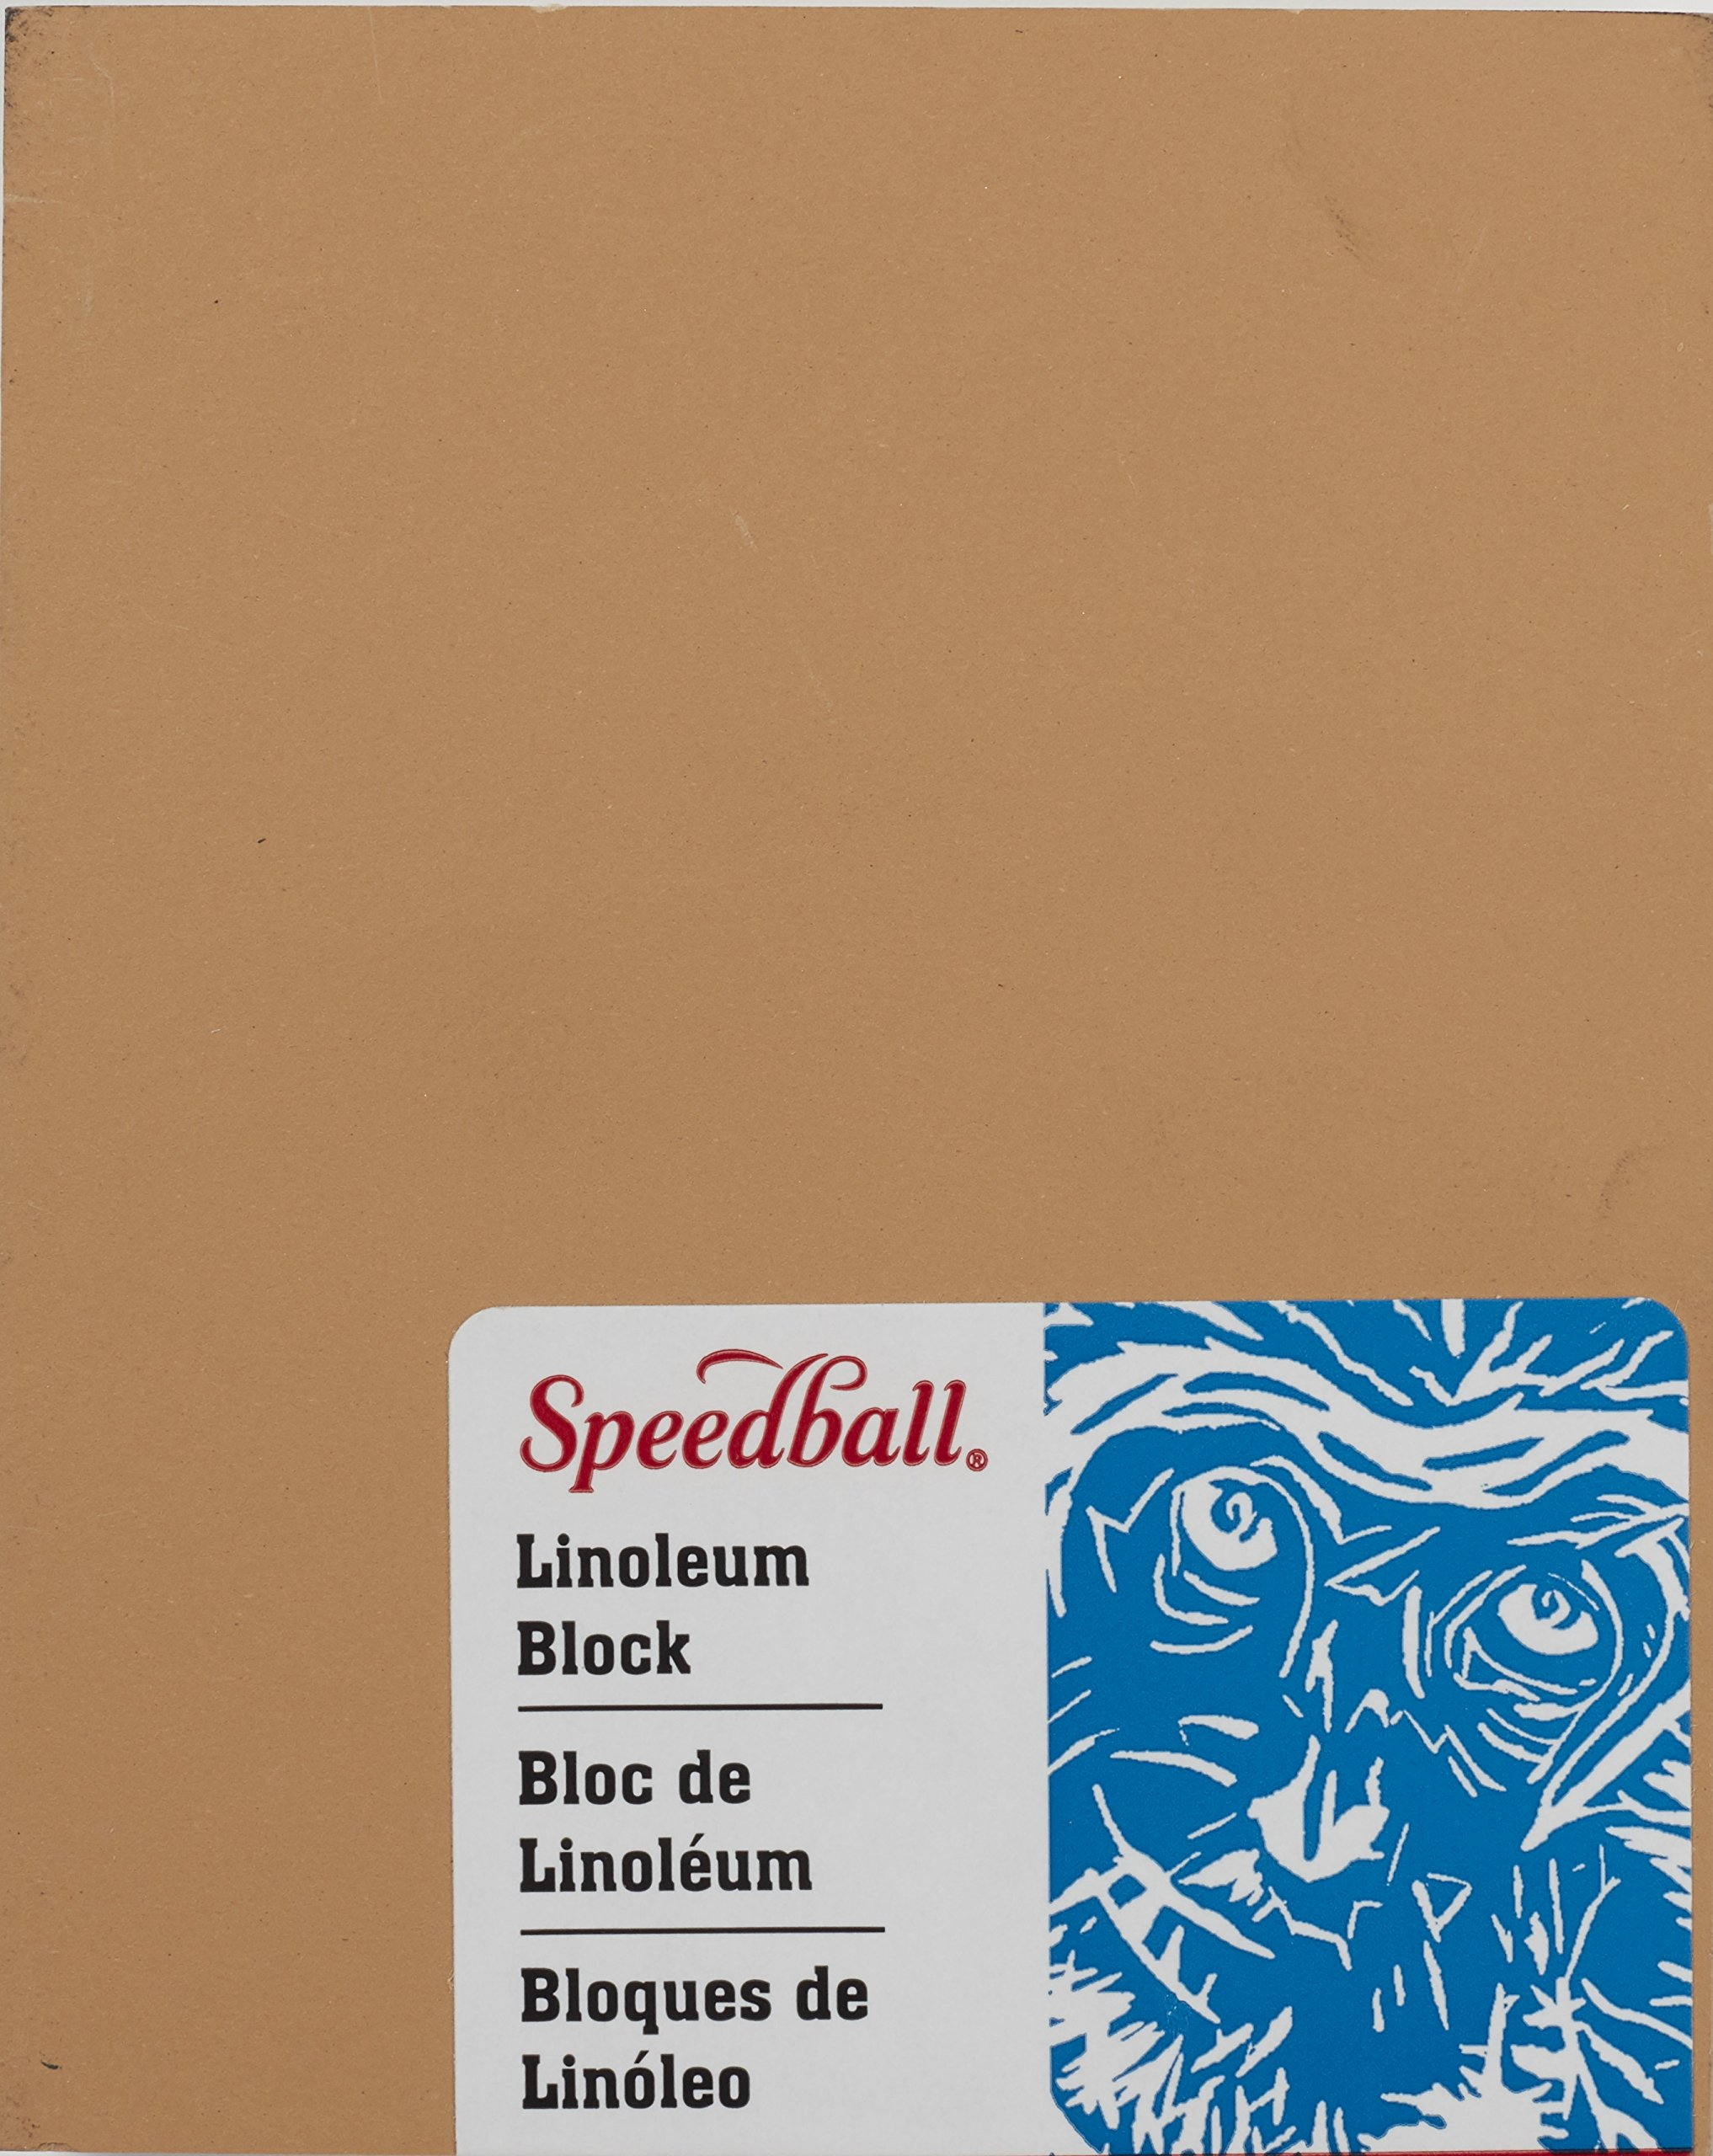 Speedball 4307 Premium Mounted Linoleum Block – Fine, Flat Surface for Easy Carving, Smoky Tan, 4 x 5 Inches